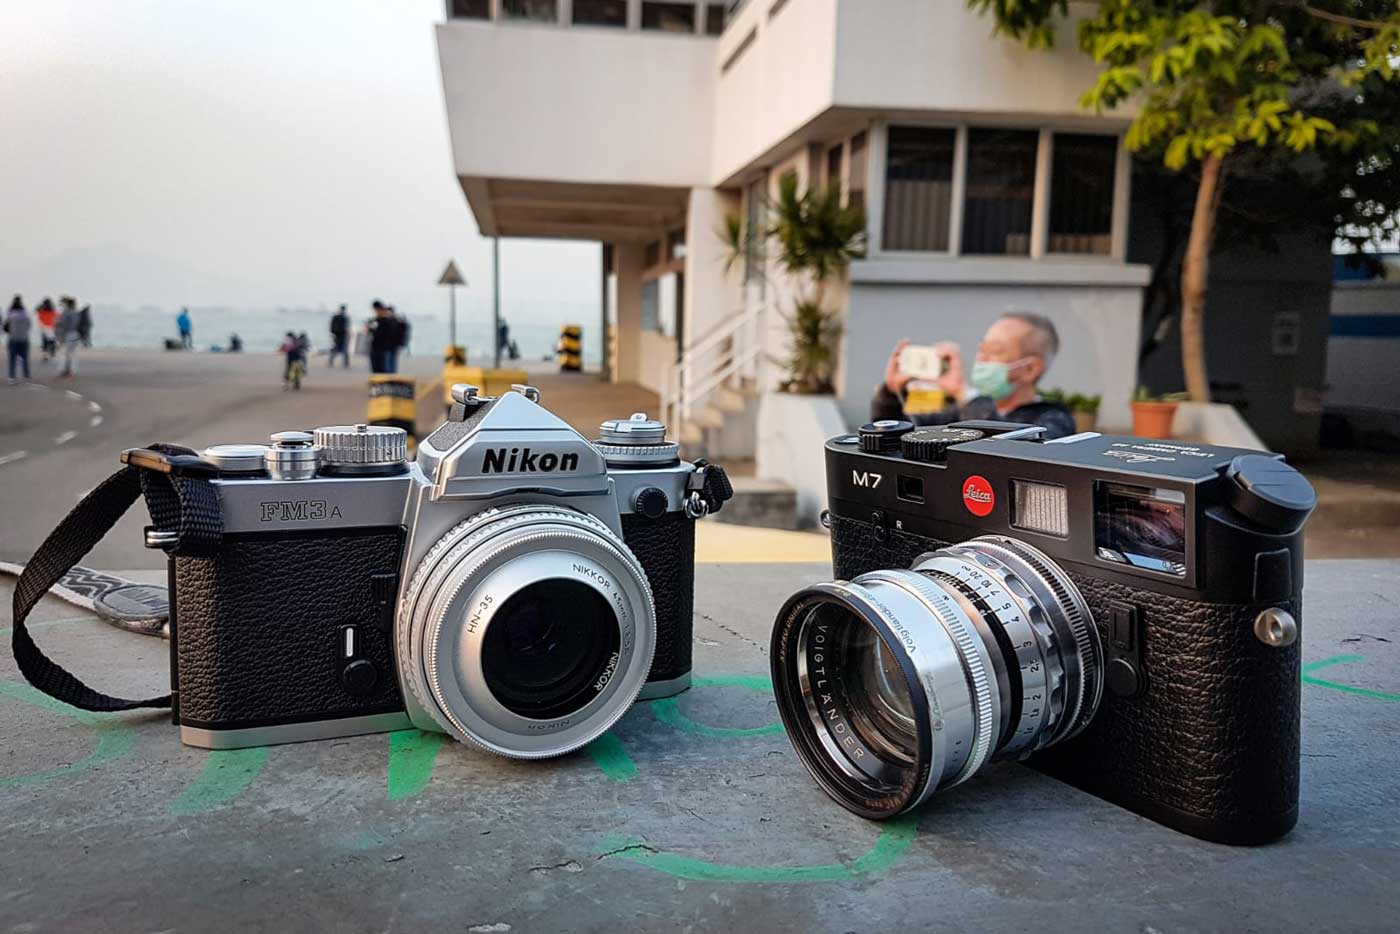 10-tips-buying-second-hand-used-pre-owned-film-camera-beginner-guide-check-detect-inspecting-working-properly-cameras-lenses-first-time-leica-rangefinder-slr-nikon-difference-fm3a-m7